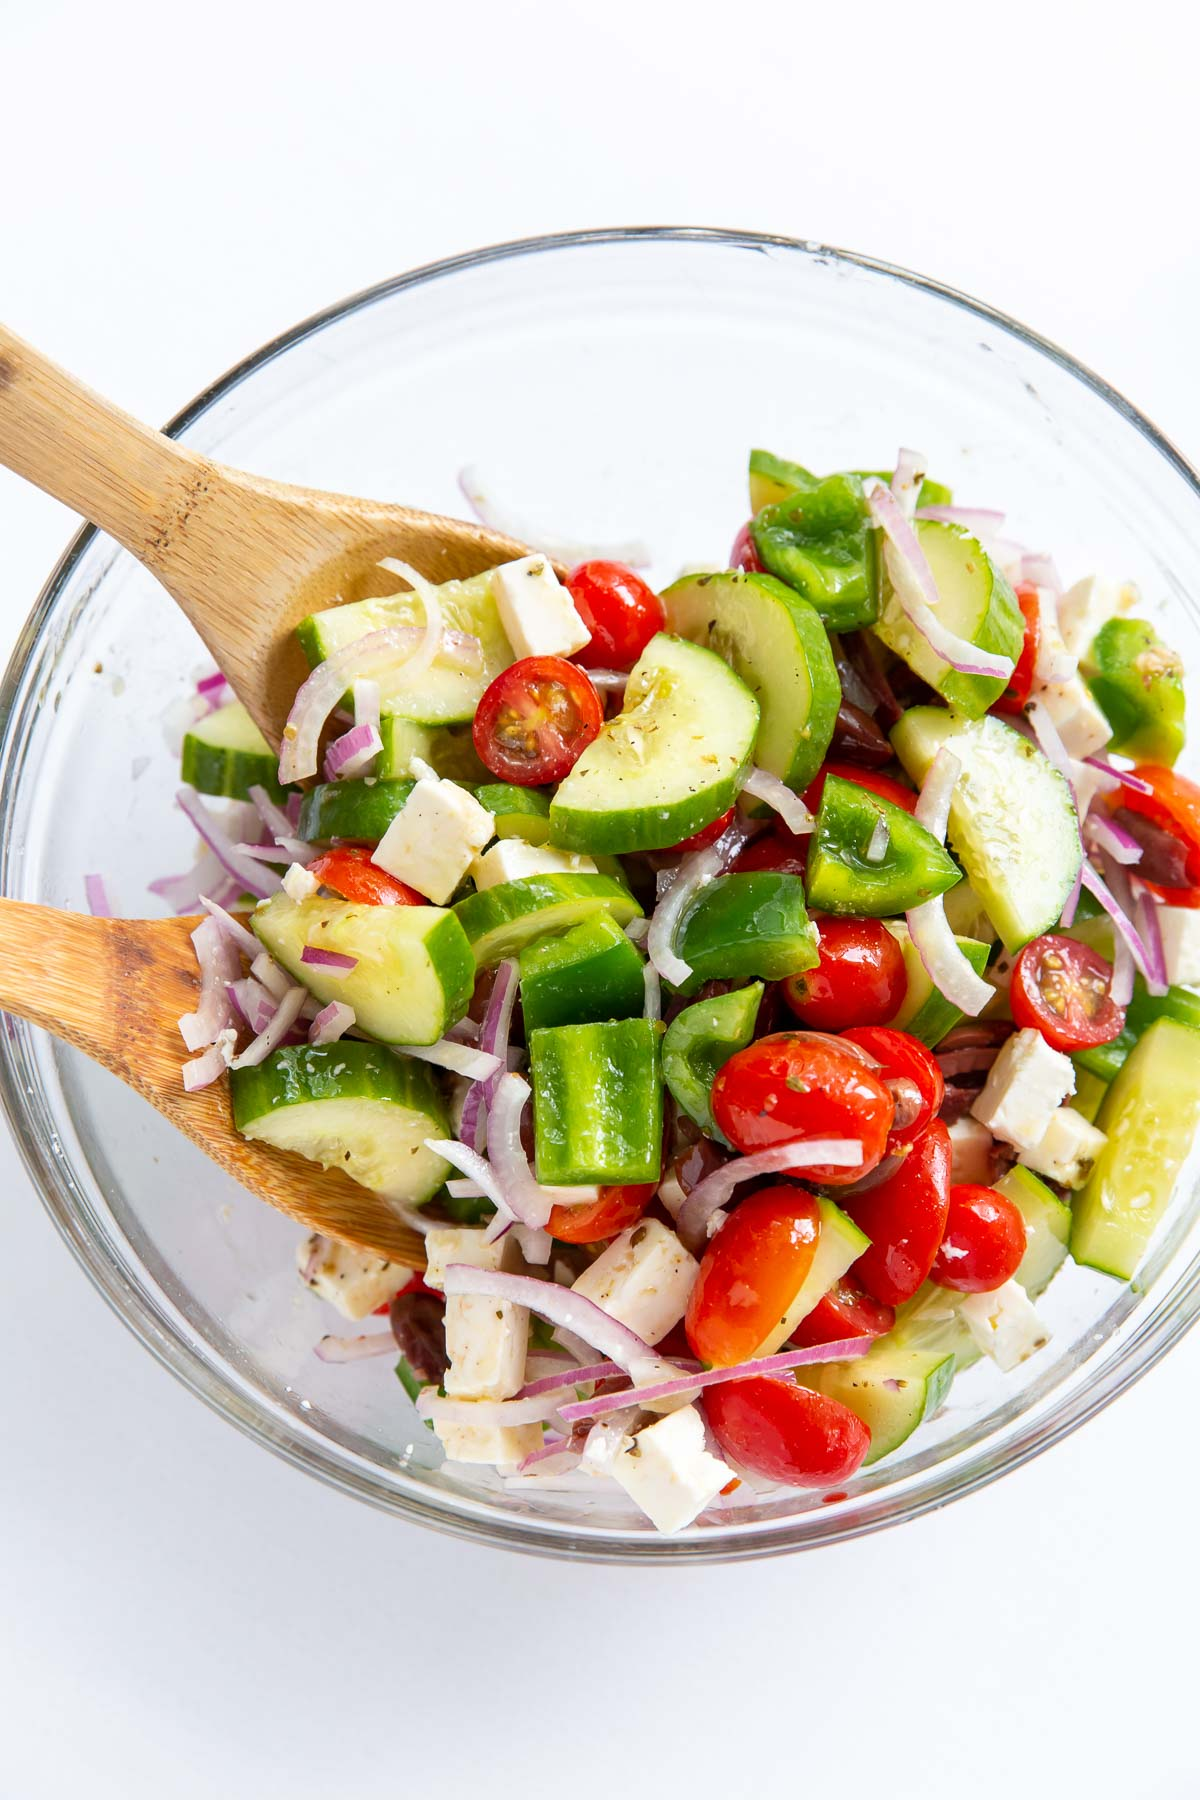 greek salad tossed with dressing in a glass bowl with wooden salad servers